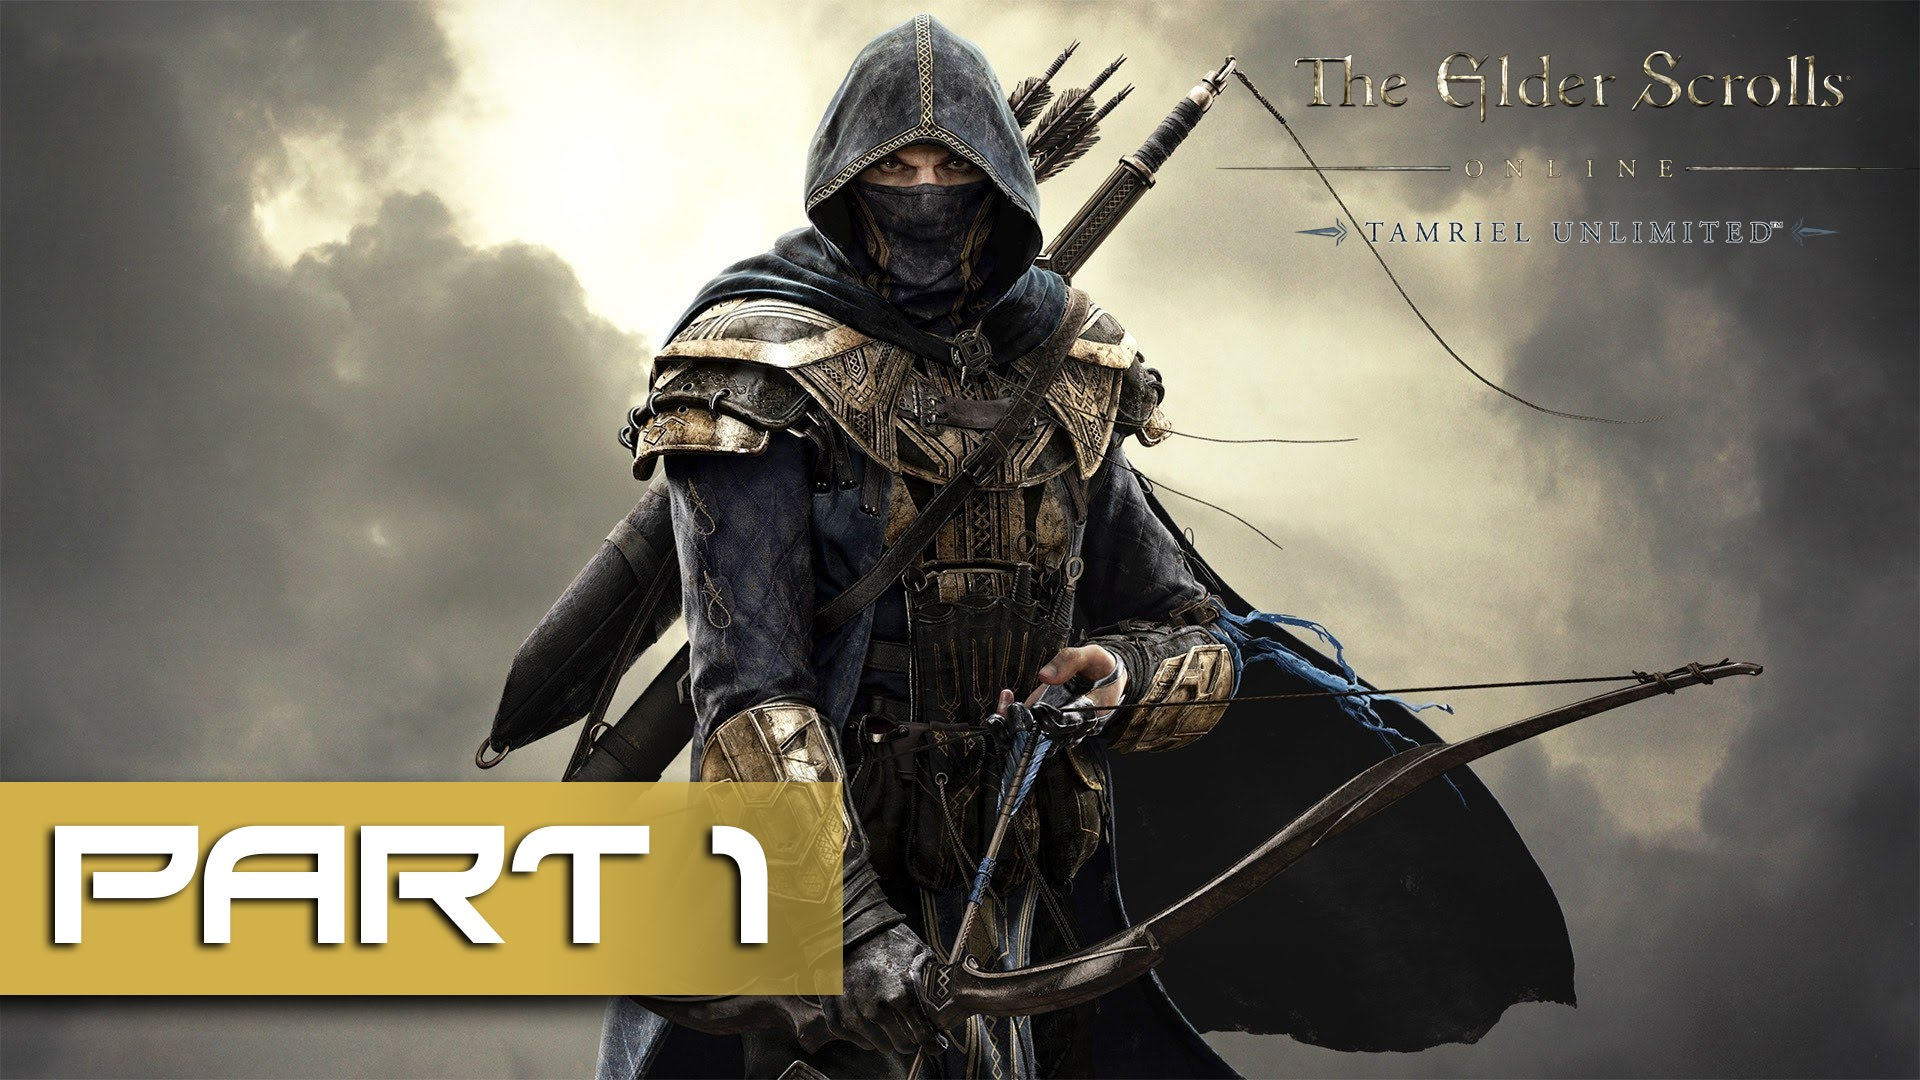 The Elder Scrolls Online Tamriel Unlimited - Gameplay Walkthrough Part 1 - So Much Has Changed - YouTube